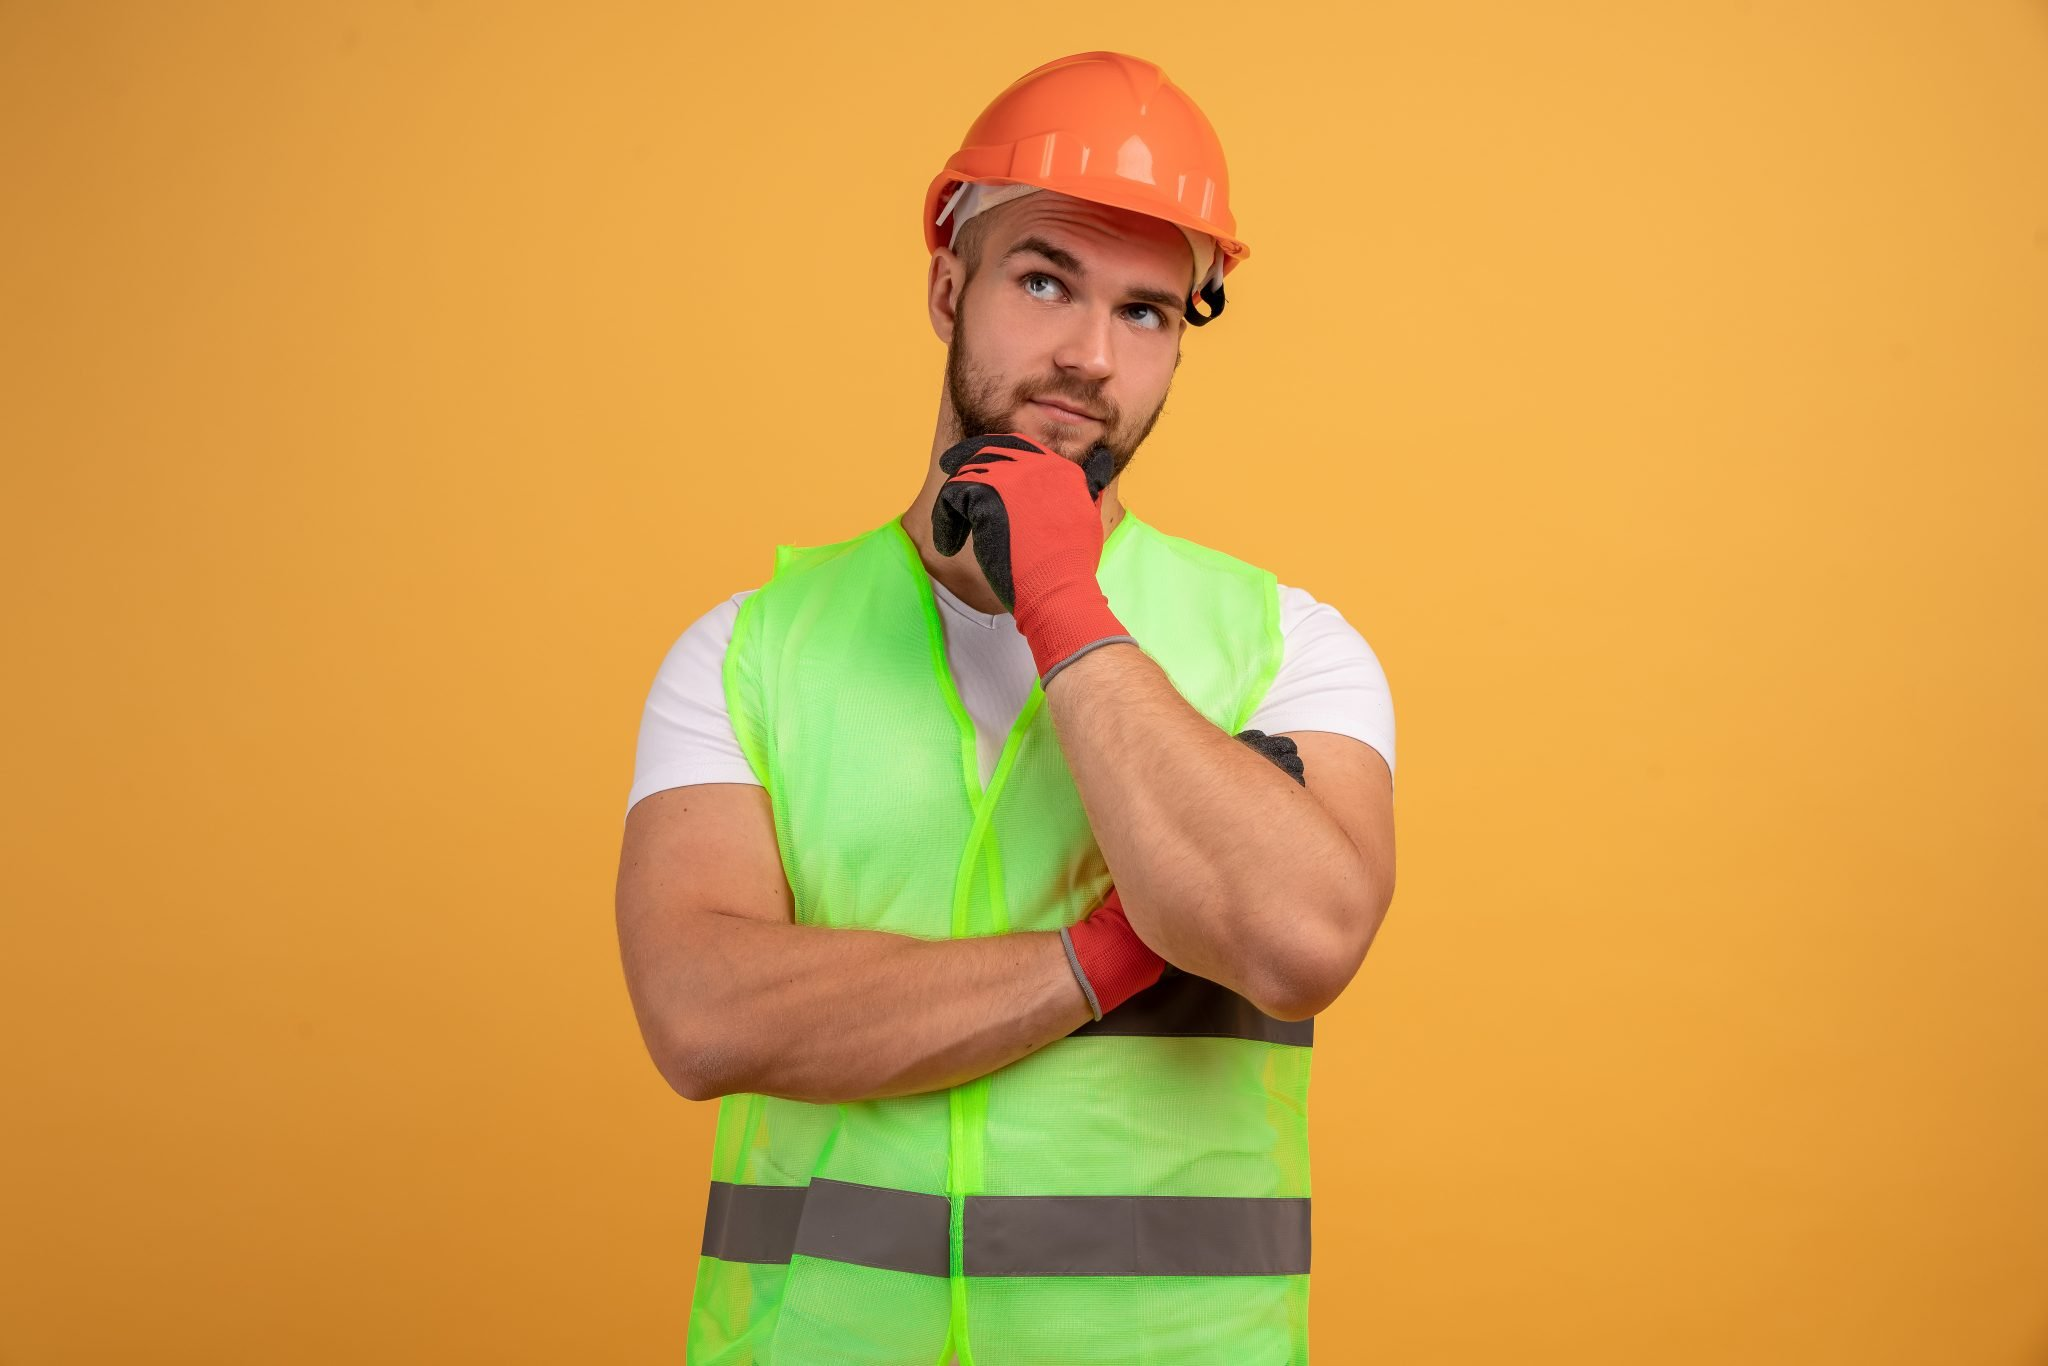 Young male constructor worker in orange hardhat thinking with one arm crossed and the other on his chin